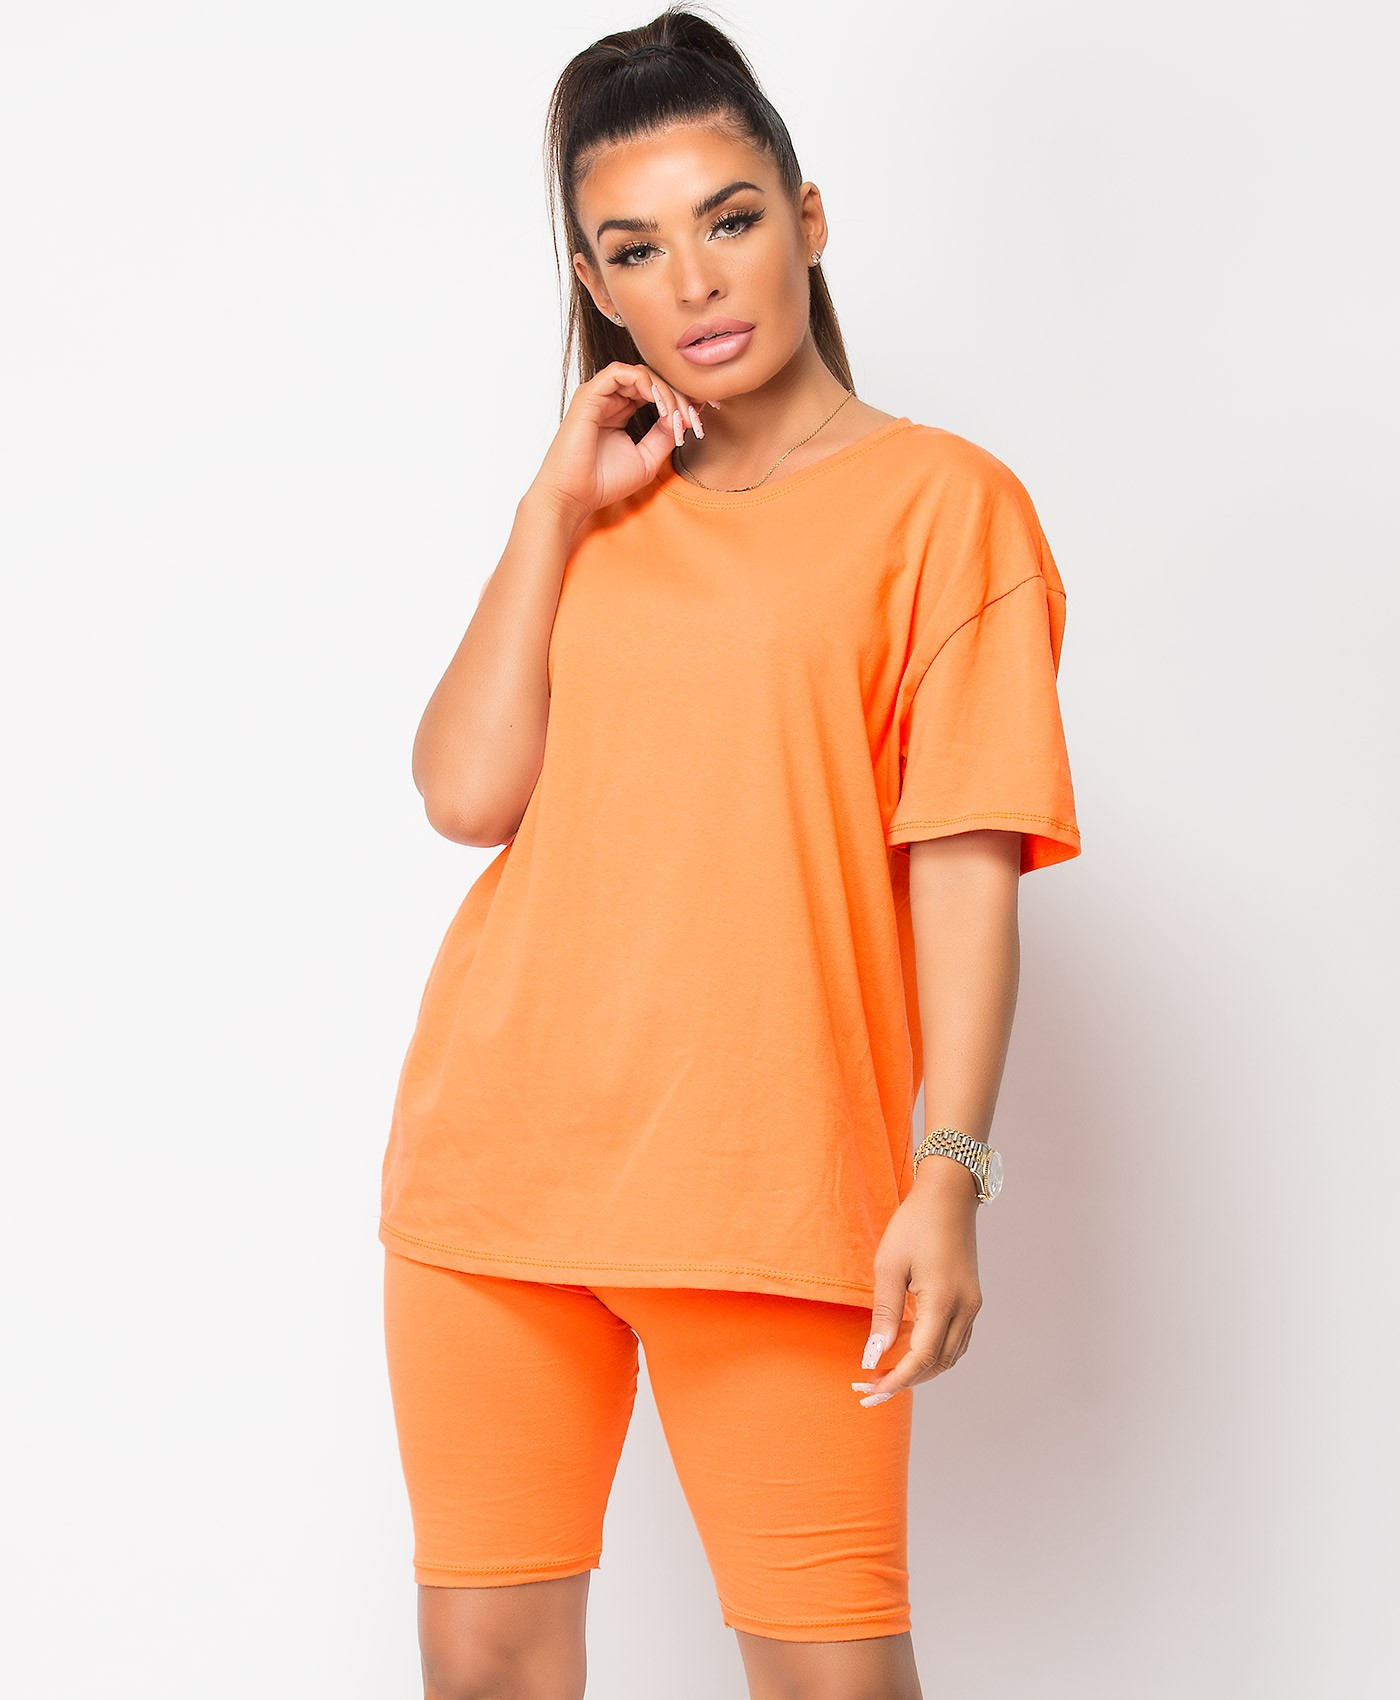 Orange Plain Cycling Short & T-Shirt Co Ord Loungewear Set